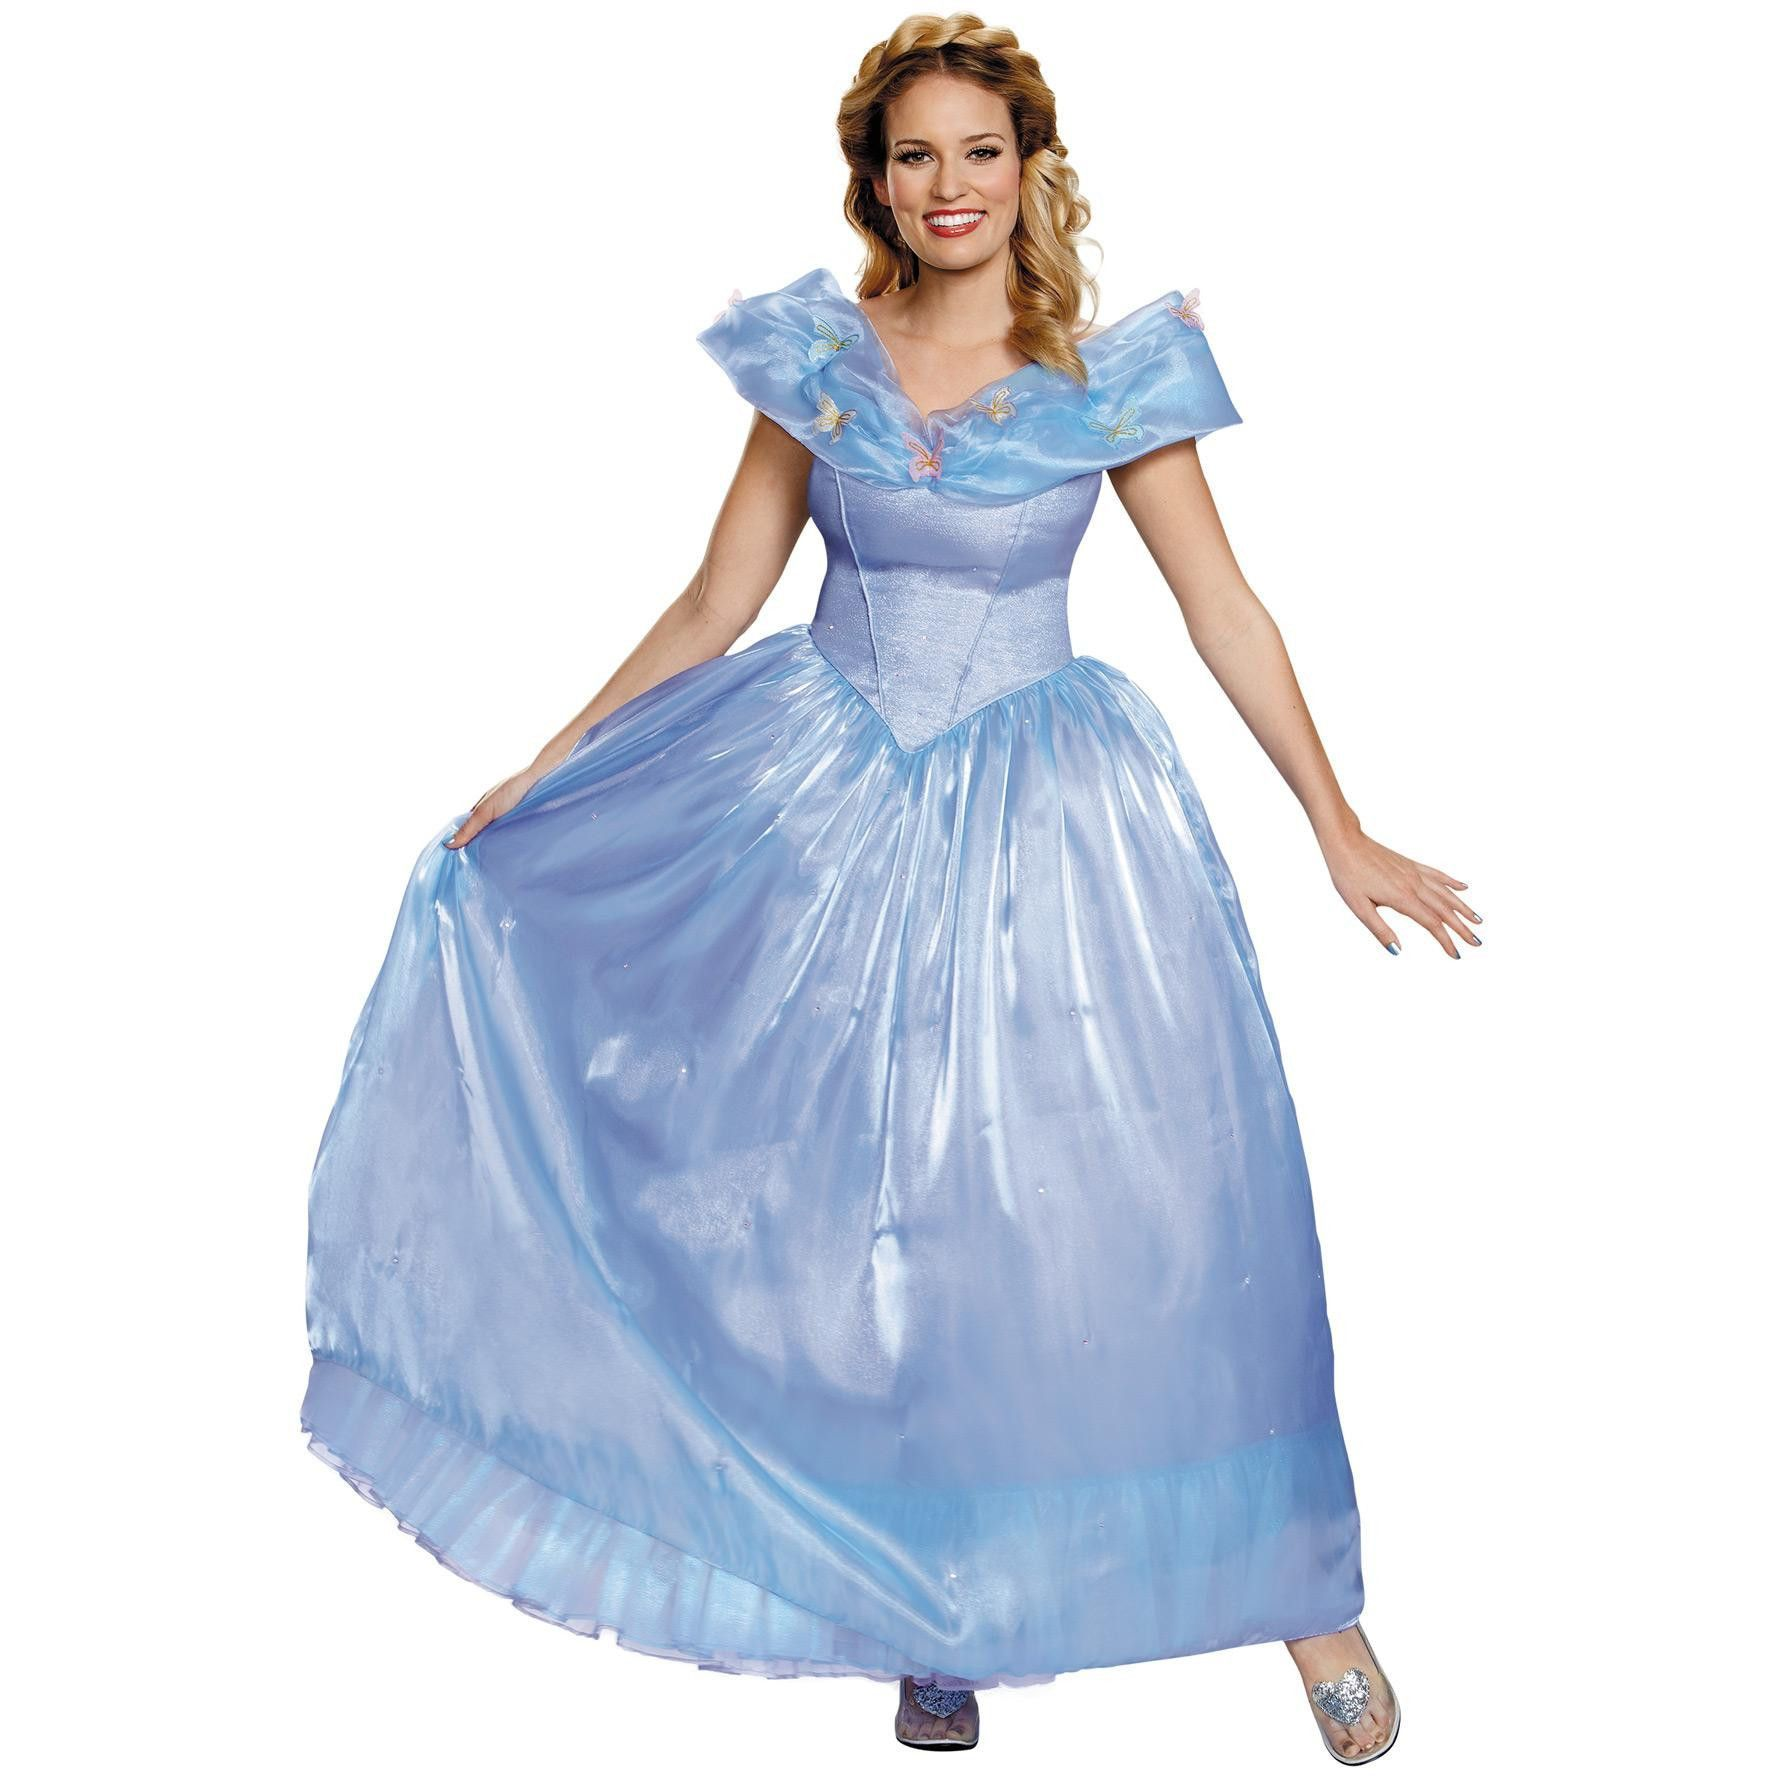 Cinderella Ultra Prestige 46 Disney cinderella movie